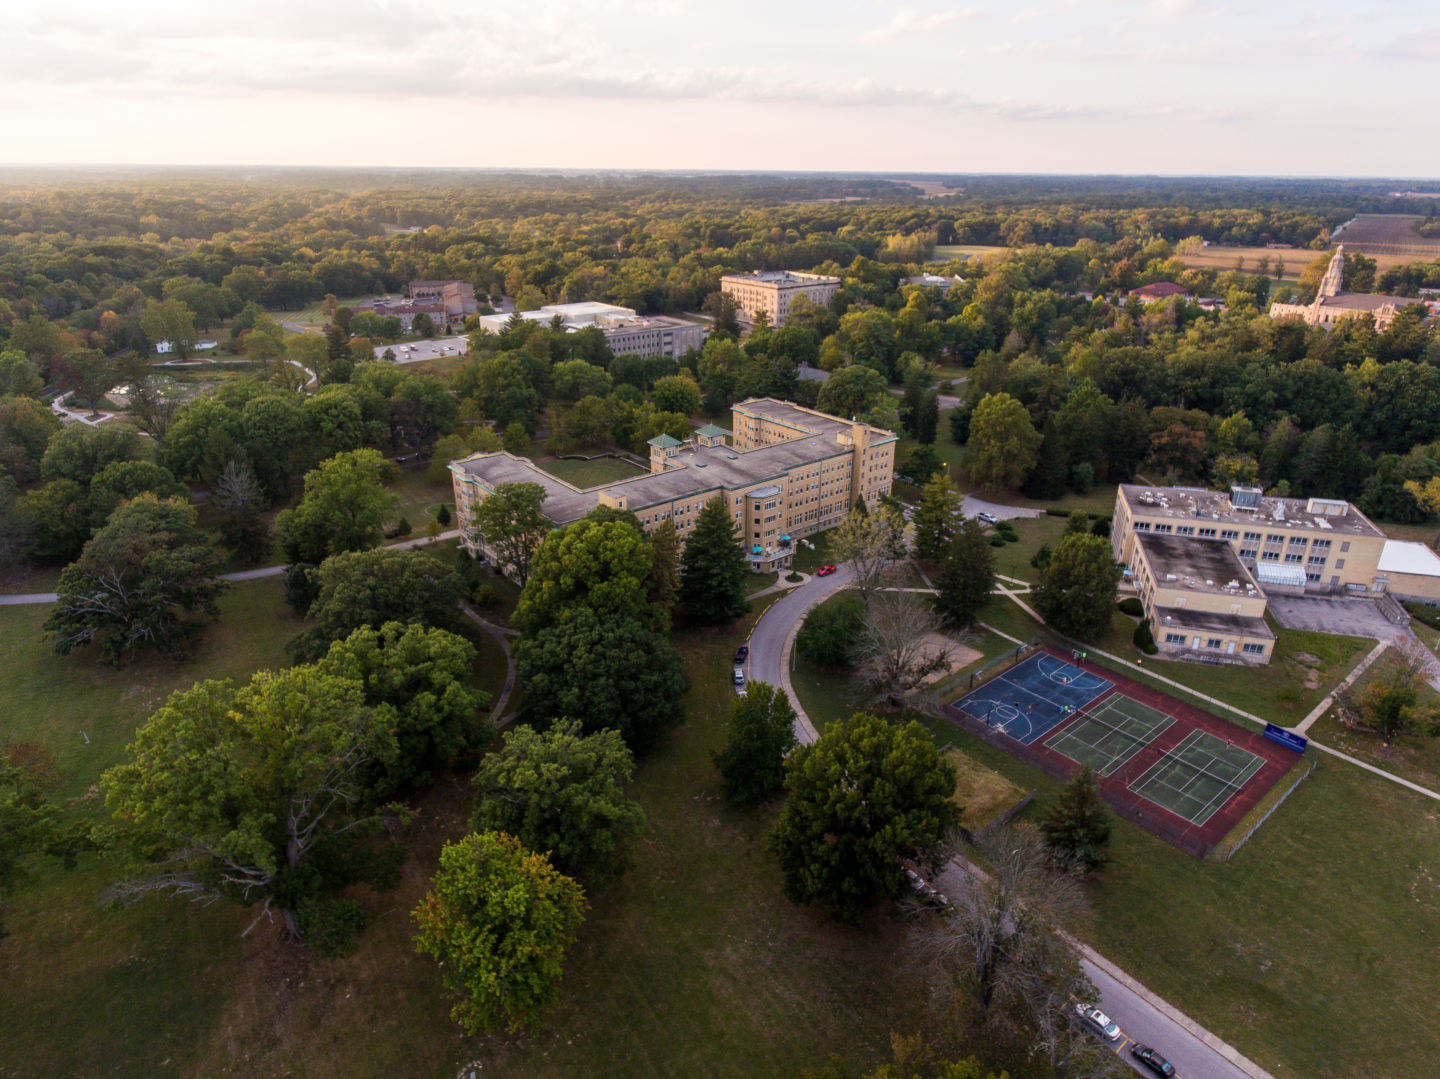 Aerial view of Le Fer Hall from behind